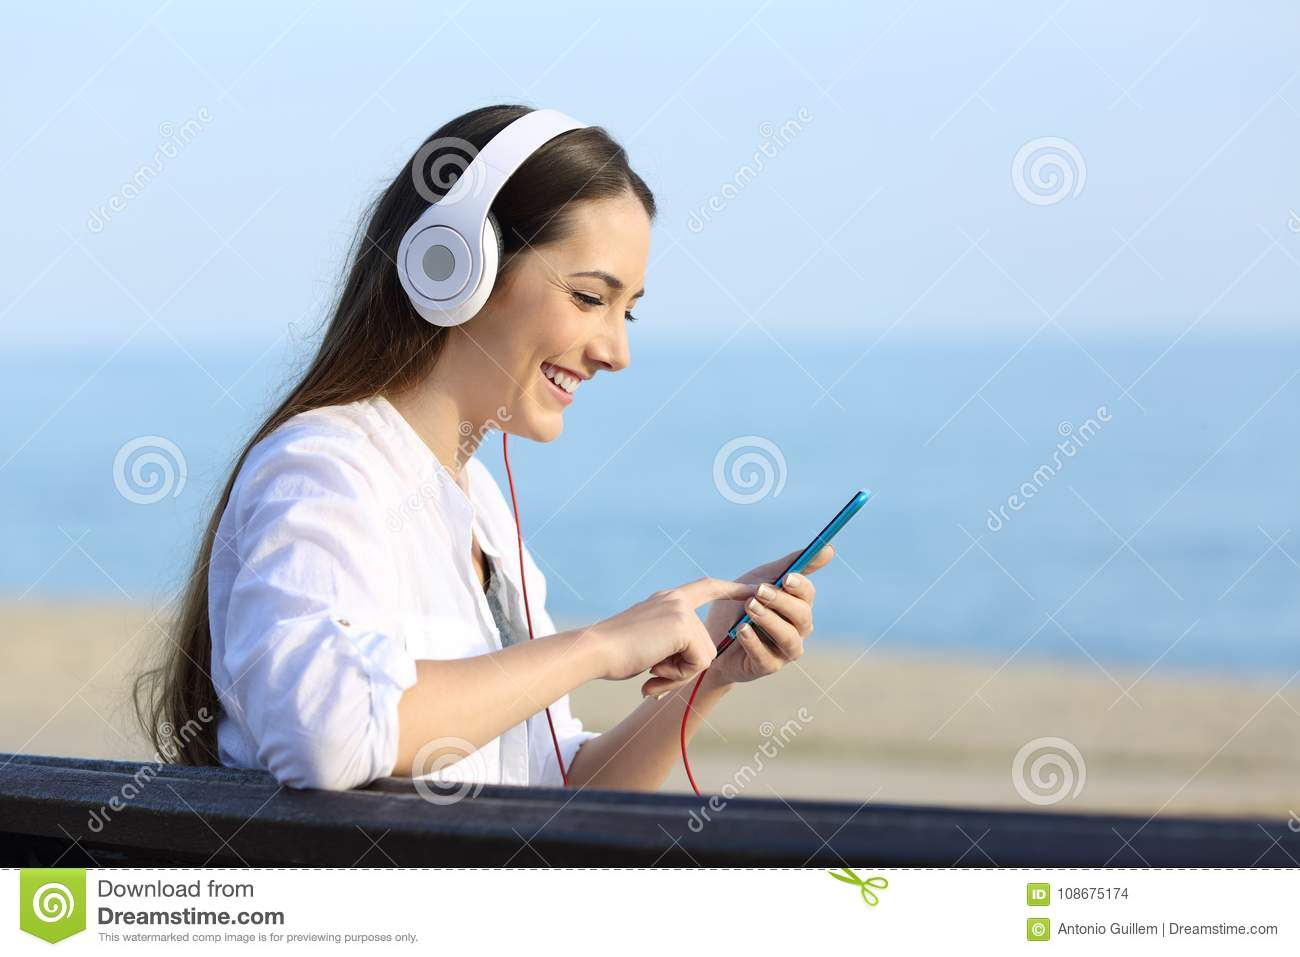 Woman listening to music sitting on a bench on the beach